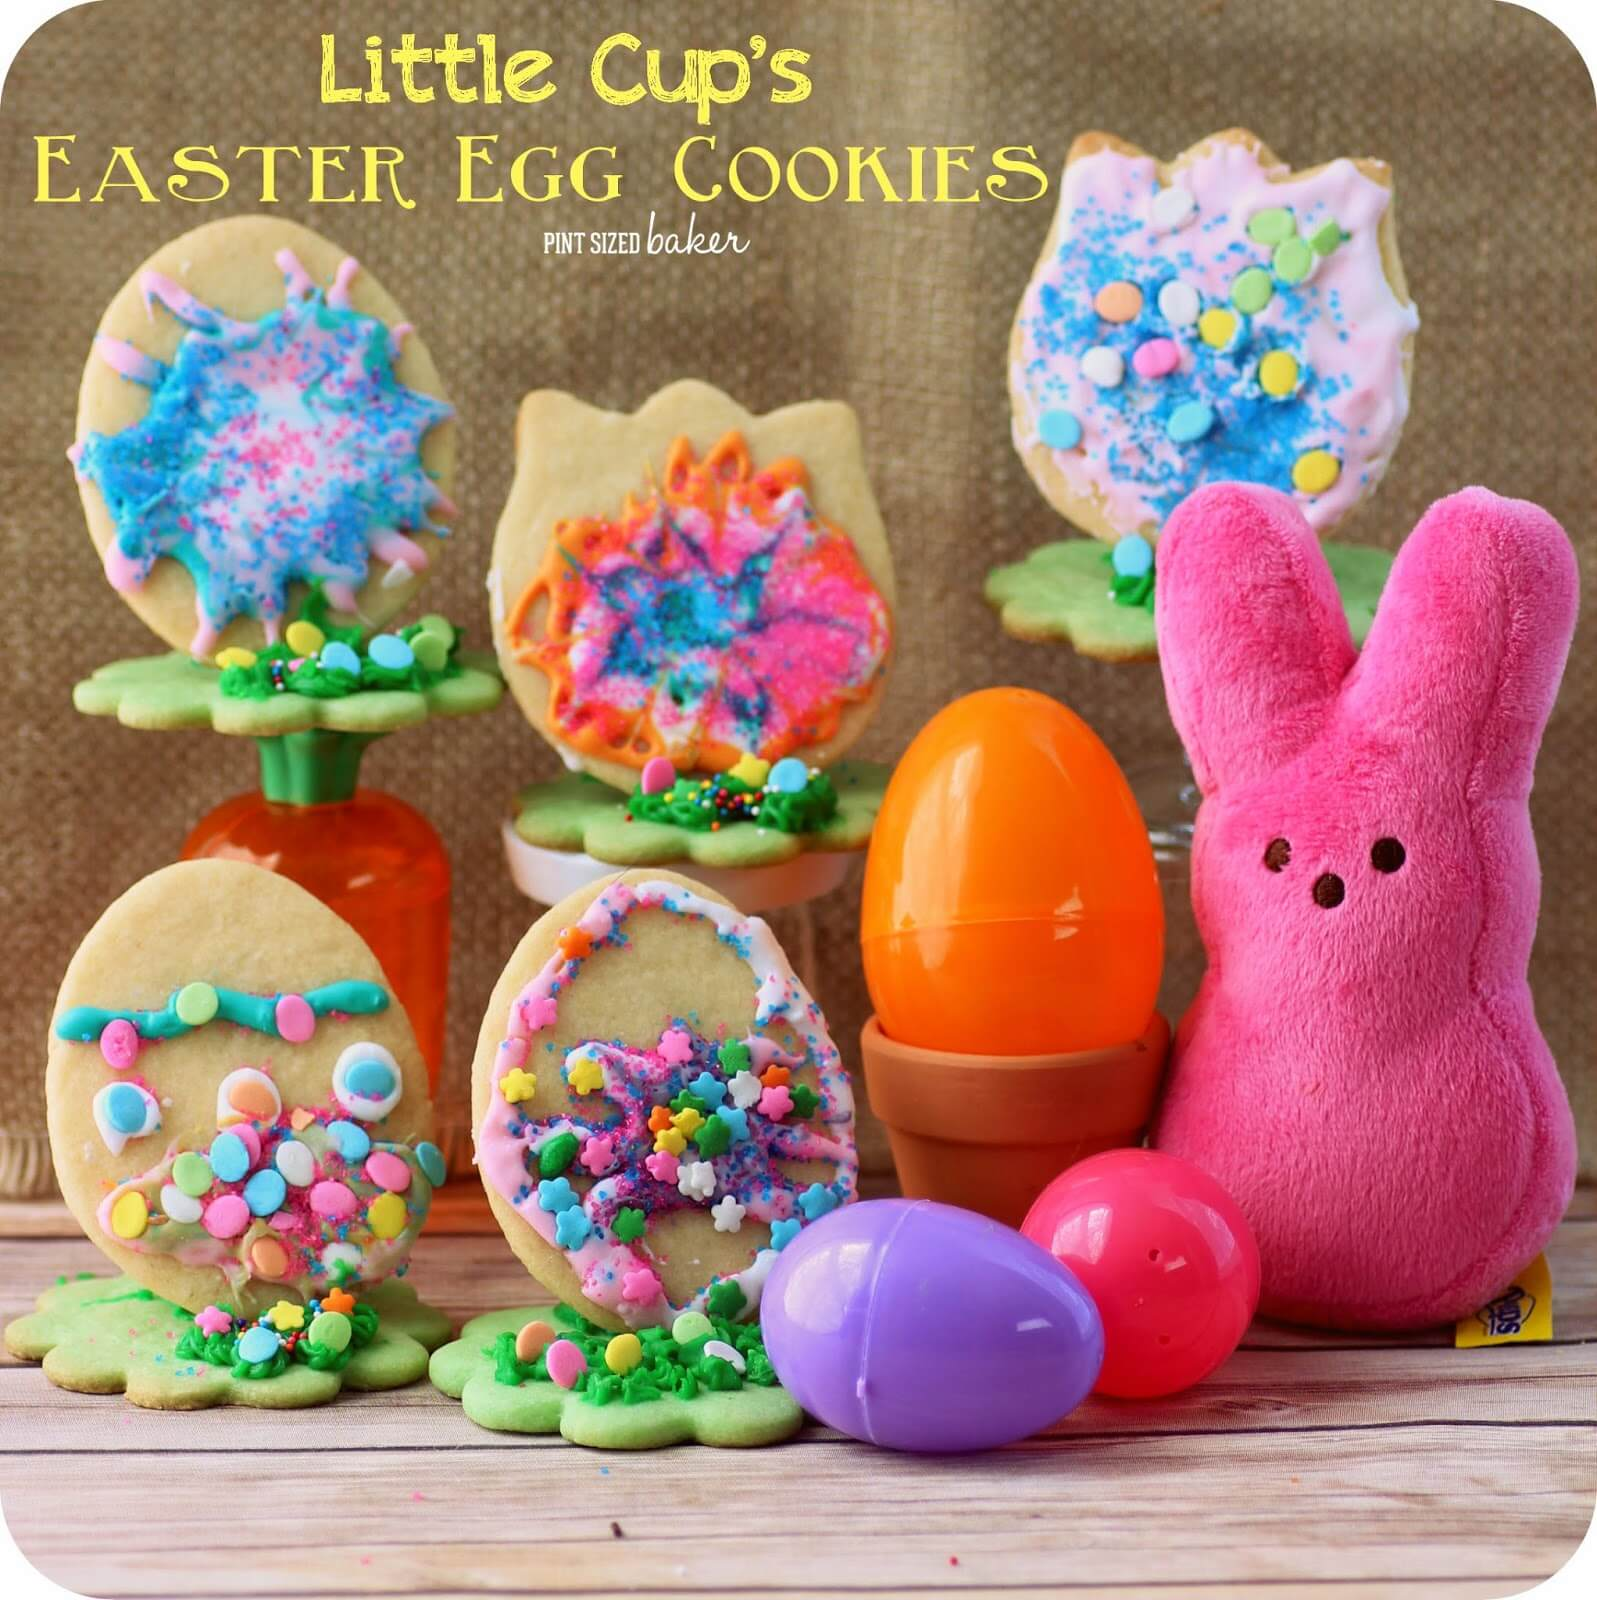 Little Cup's Easter Egg Cookies